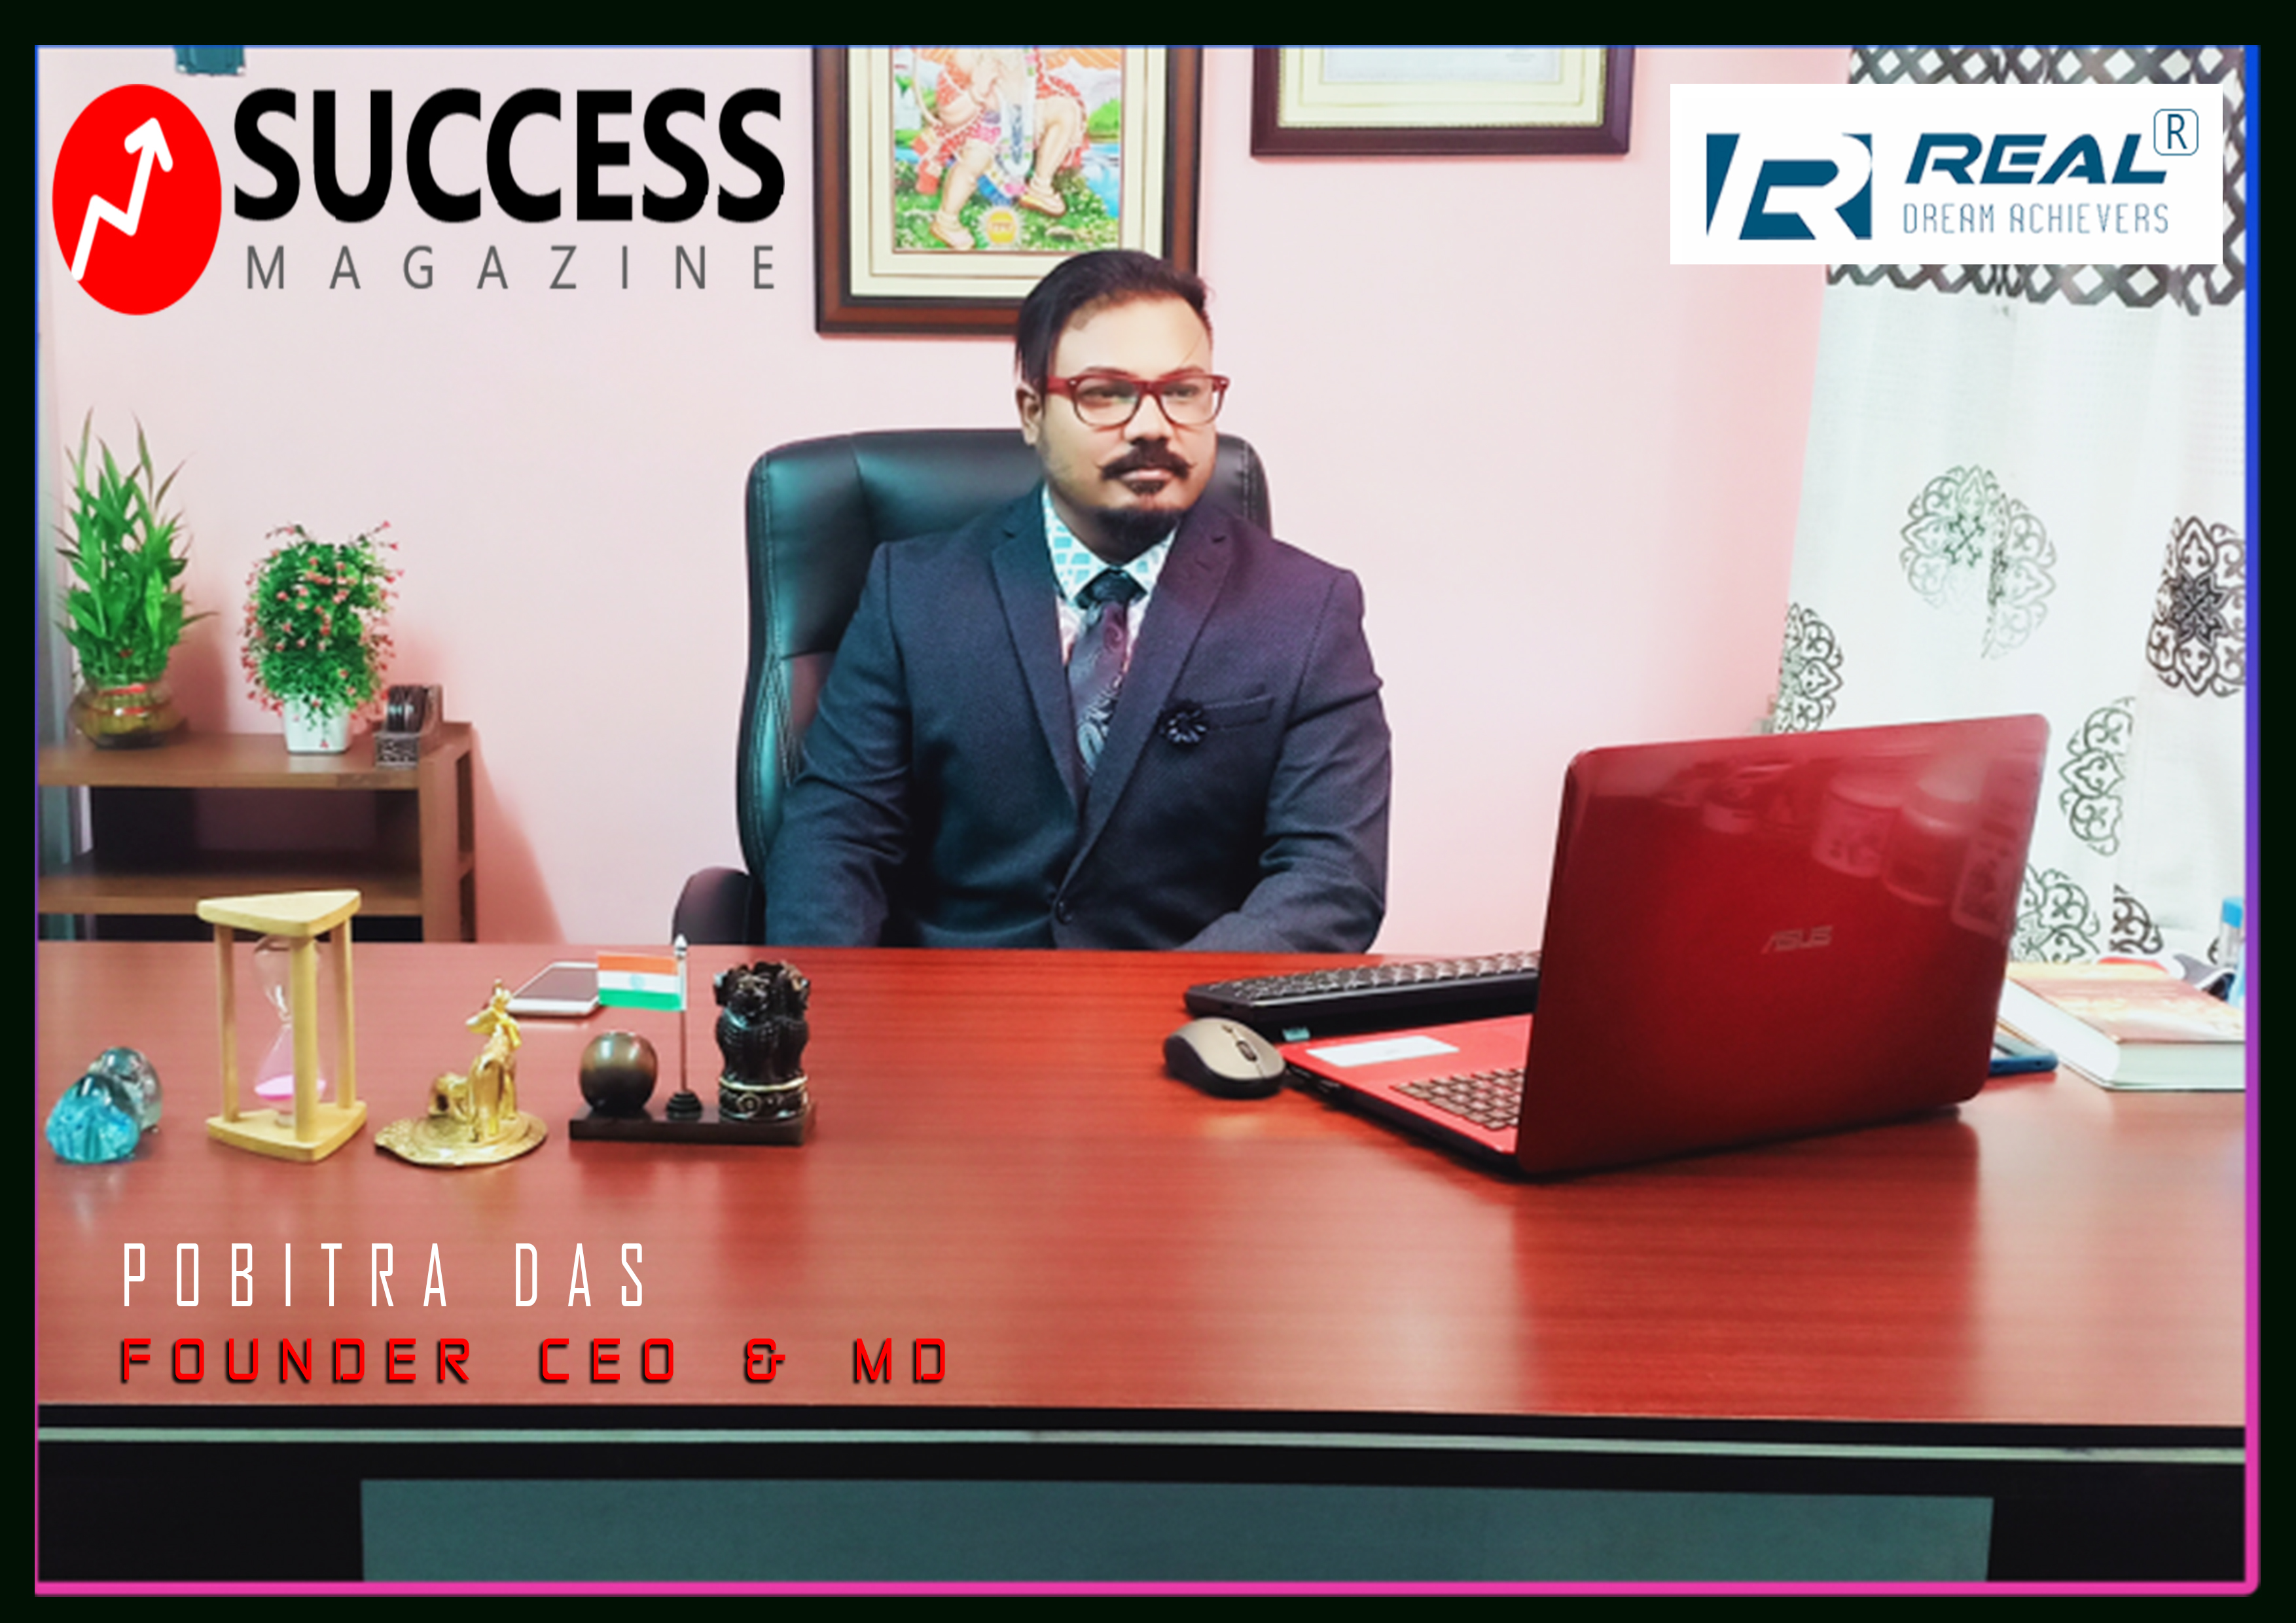 Success Magazine Publish one page Article in our Company Profile and Founder,Ceo & Md Recognition